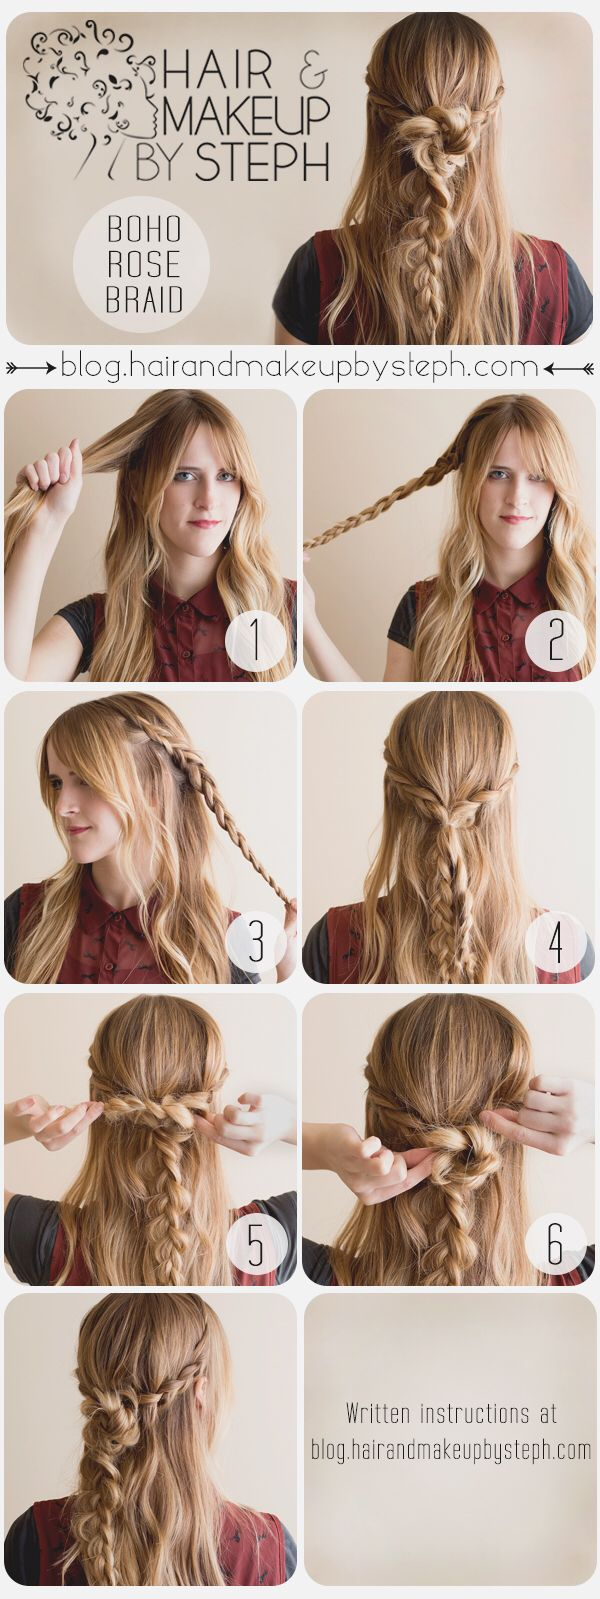 38 best everything hair images on pinterest | hairstyles, make up